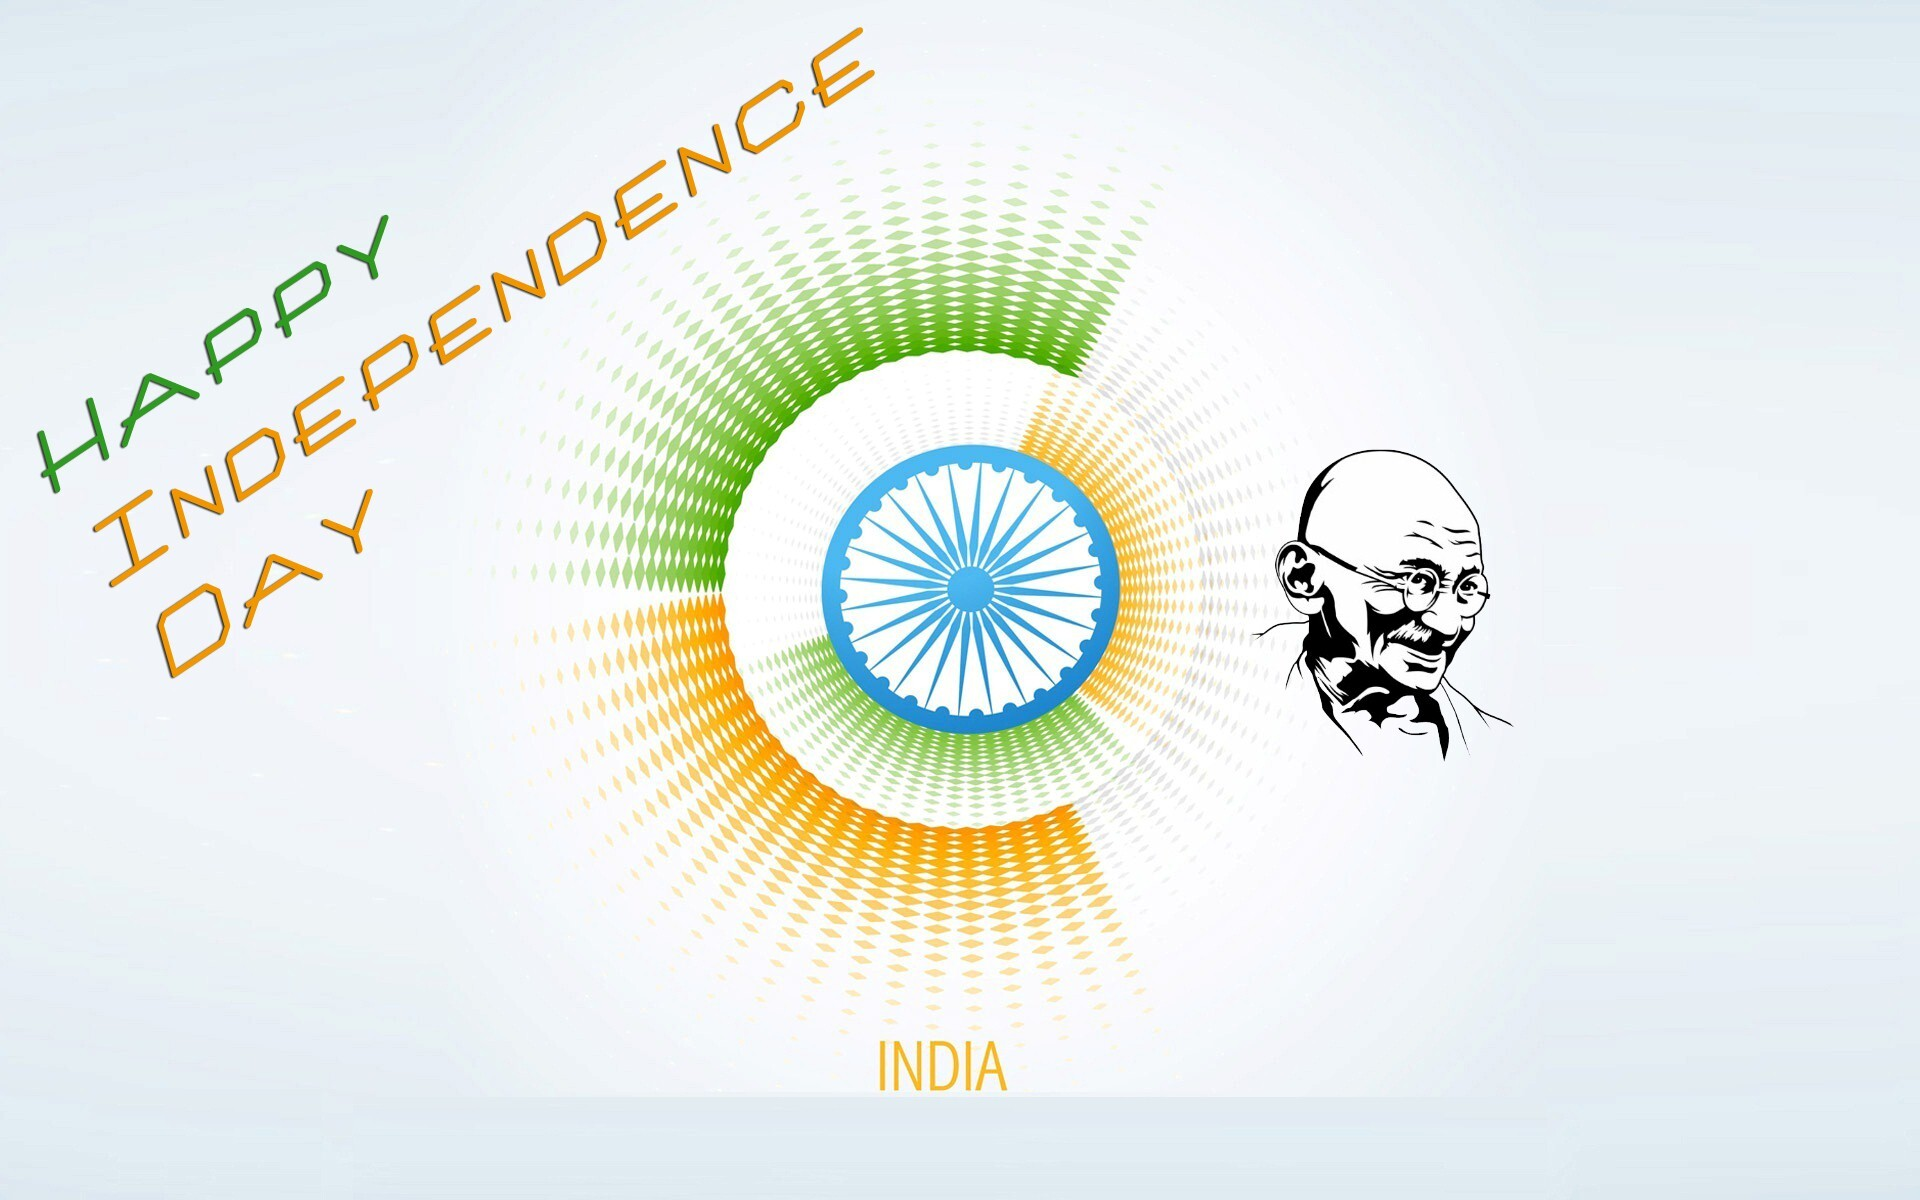 Day Happy Hd Indpeneence: Happy Independence Day Of India With Gandhiji HD Wallpaper